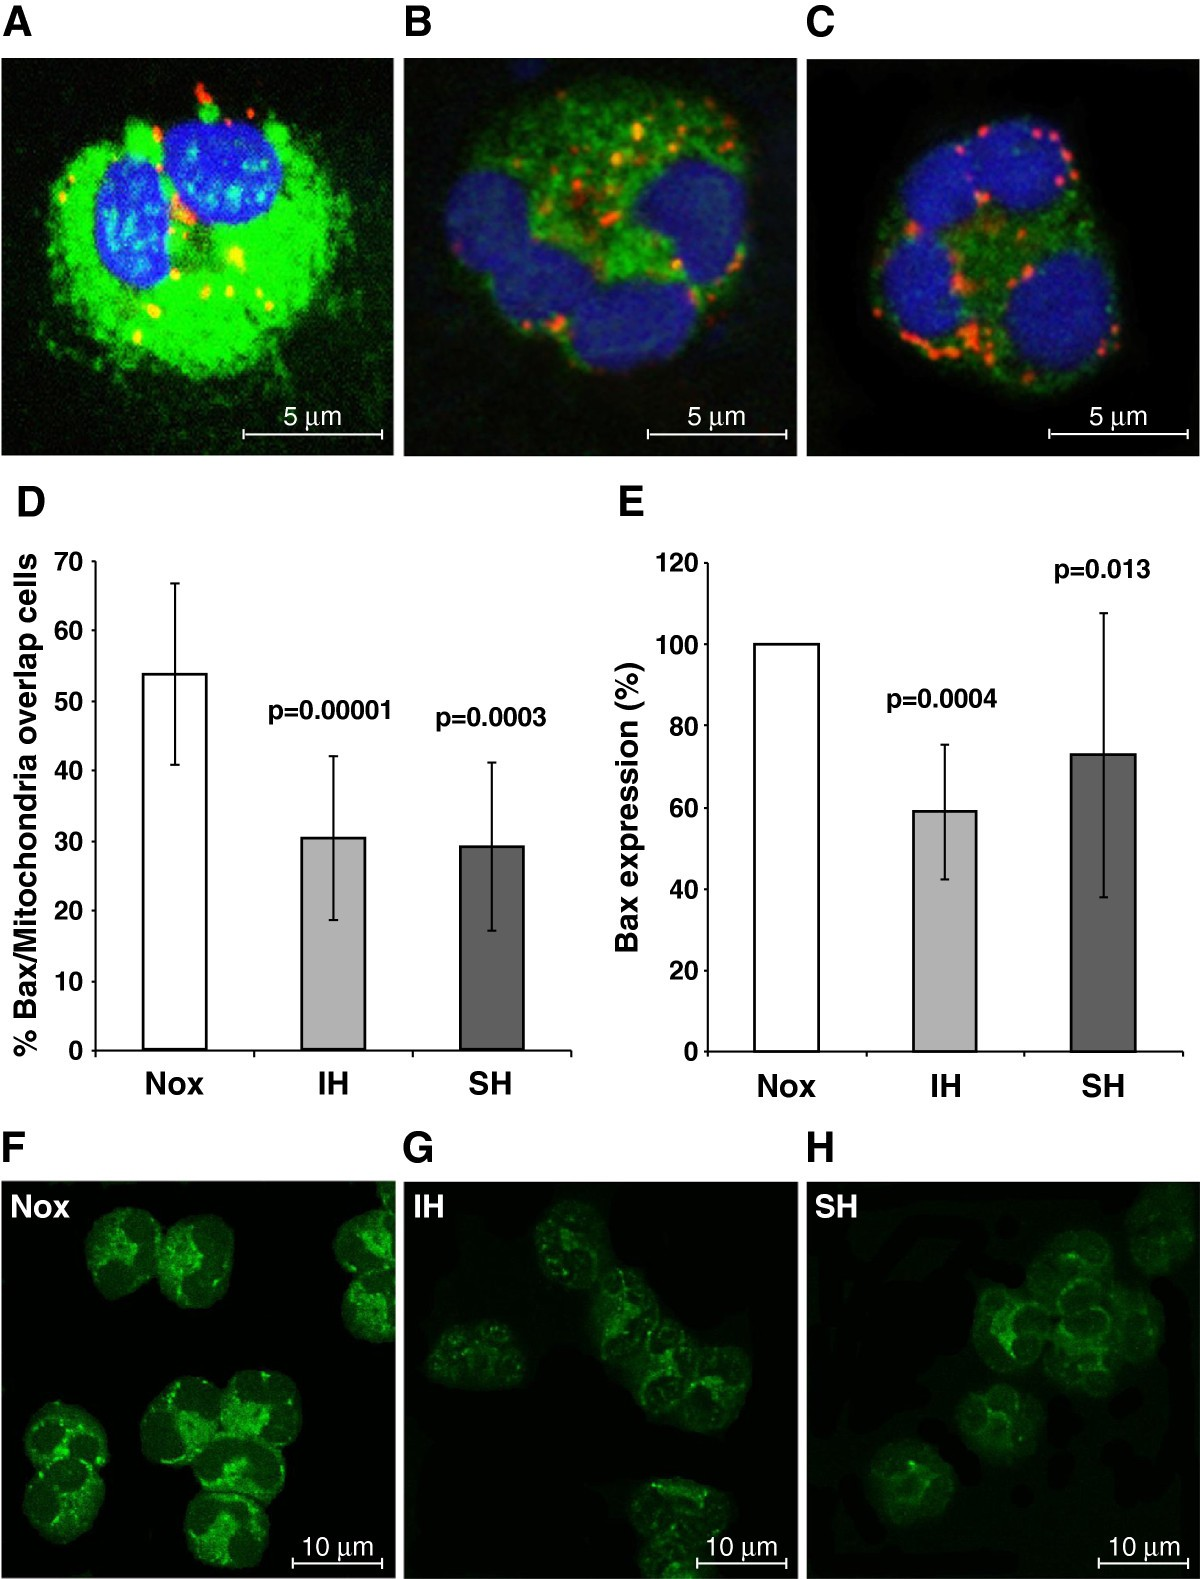 Bax/Mcl-1 balance affects neutrophil survival in intermittent